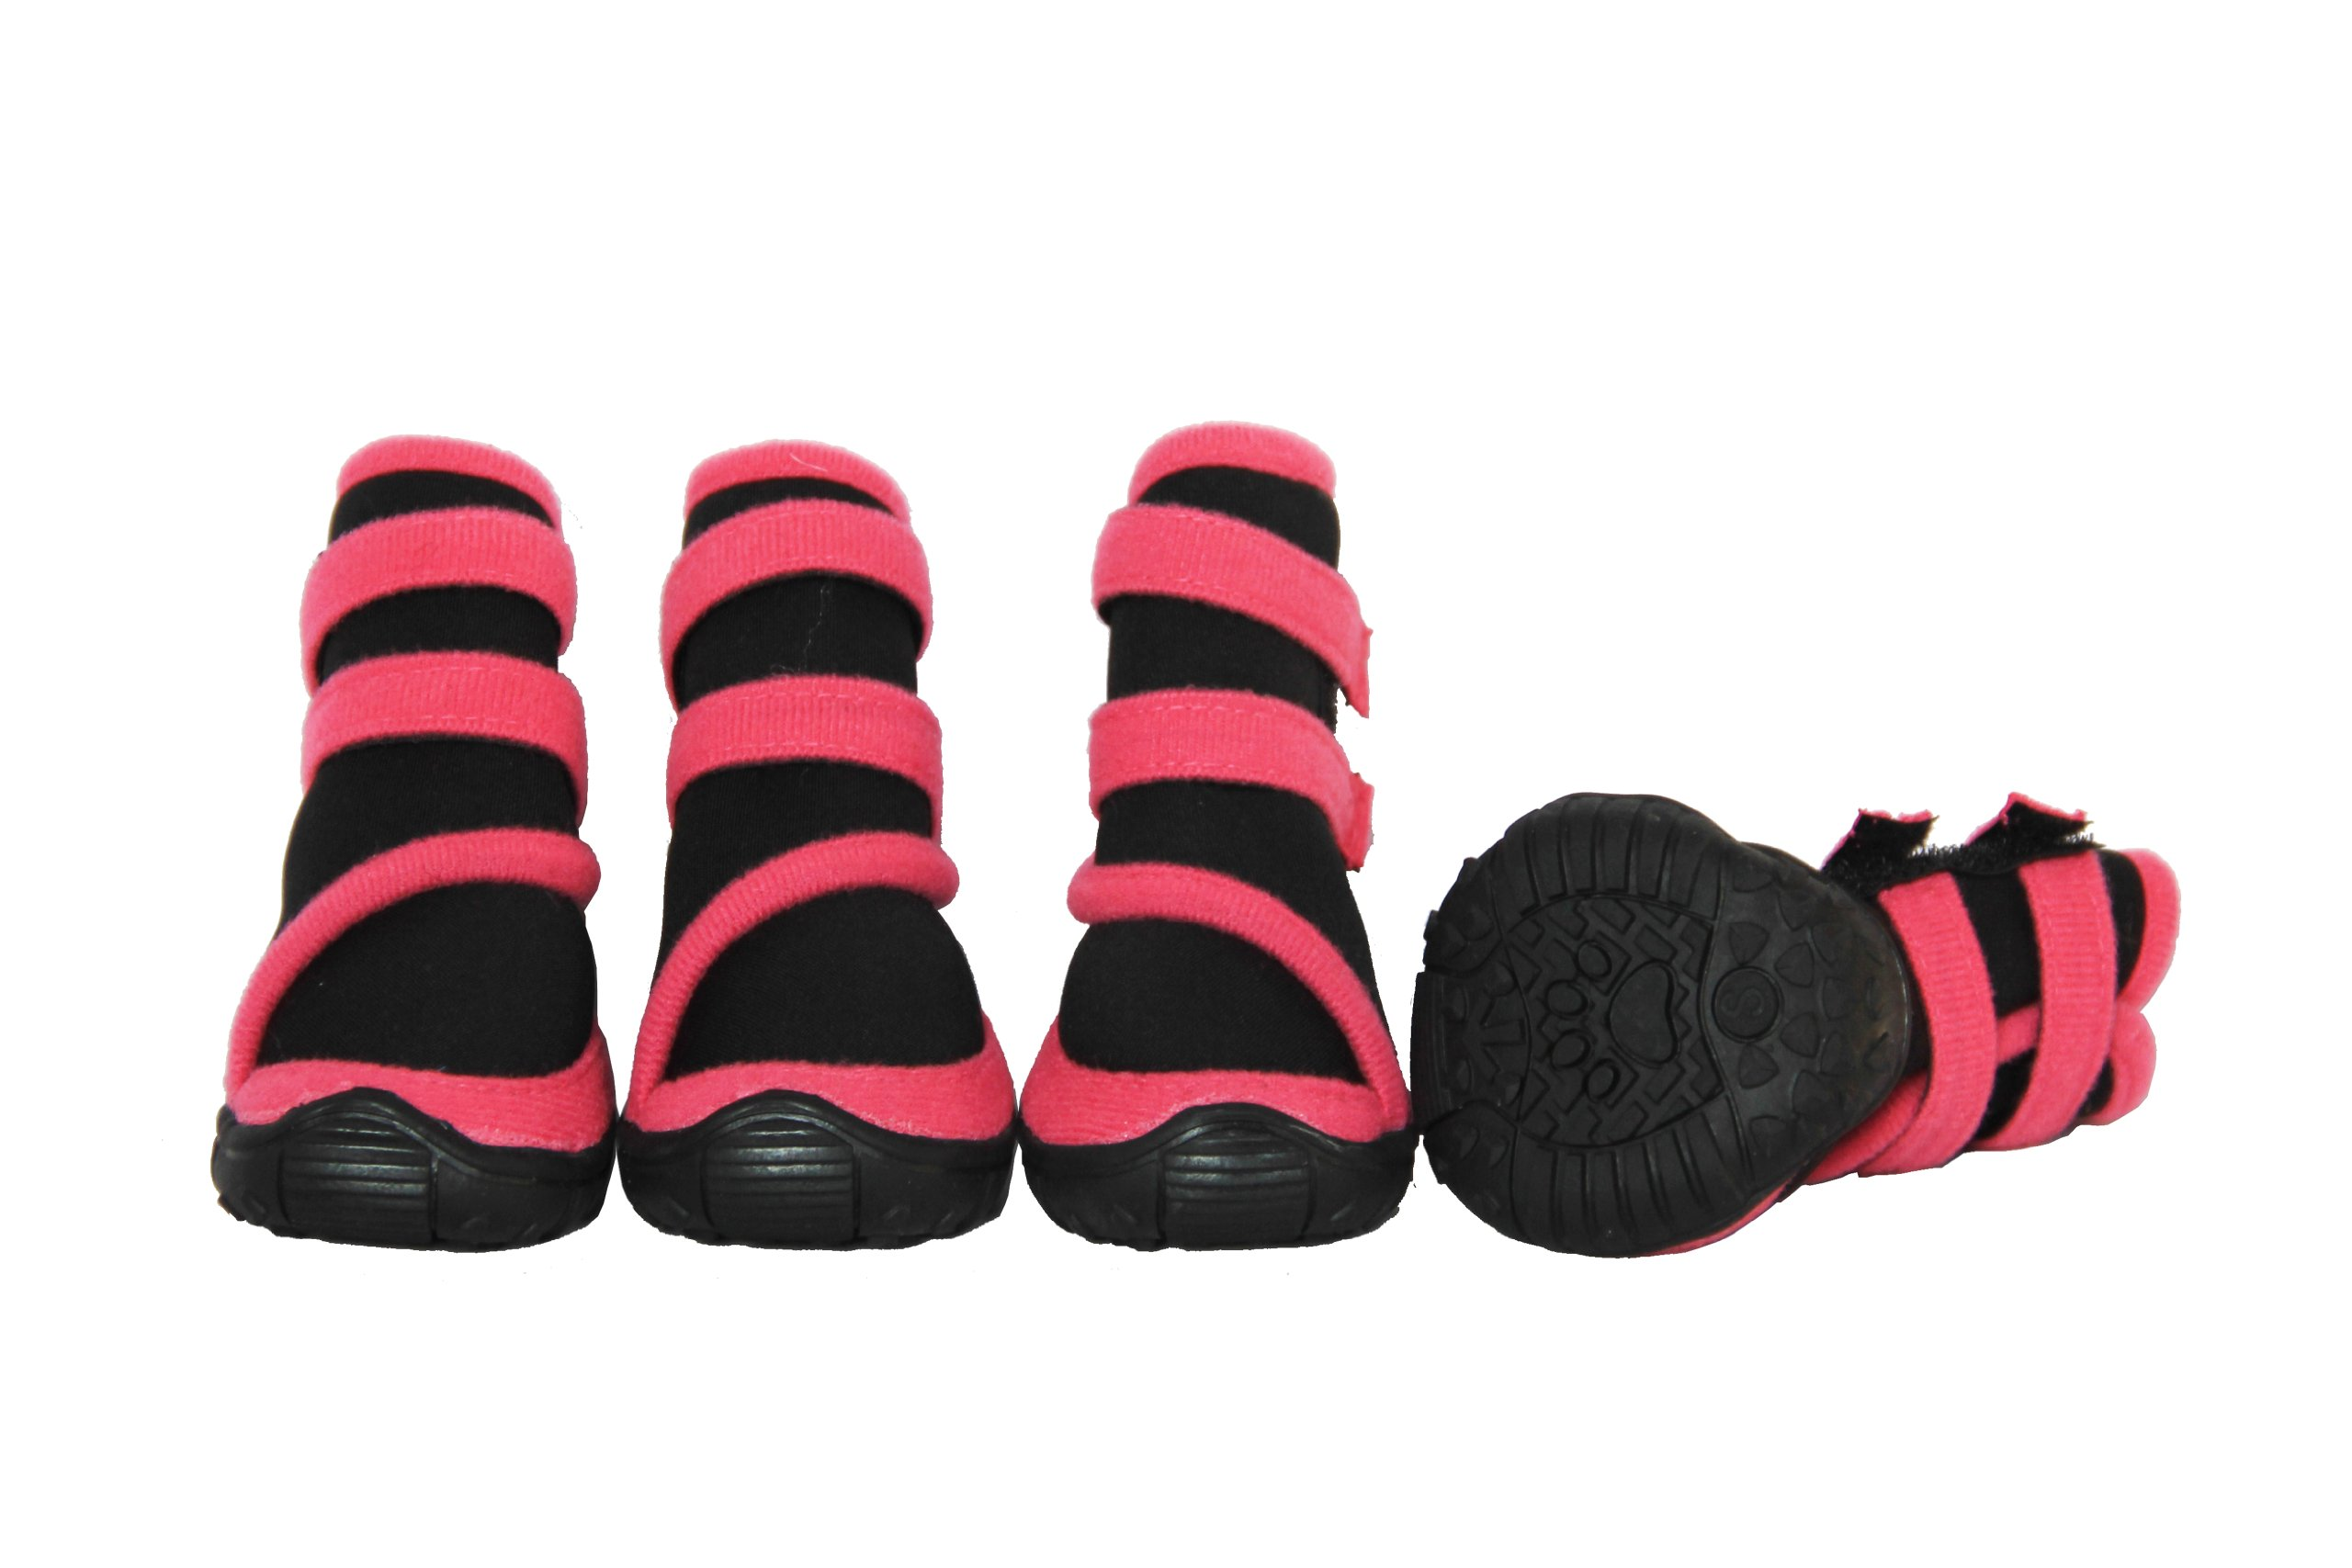 Pet Life Ankle Supportive' Neoprene Stretch Premium Grip Pet Dog Shoes Boots Booties - Set Of 4, Large, Black/Pink